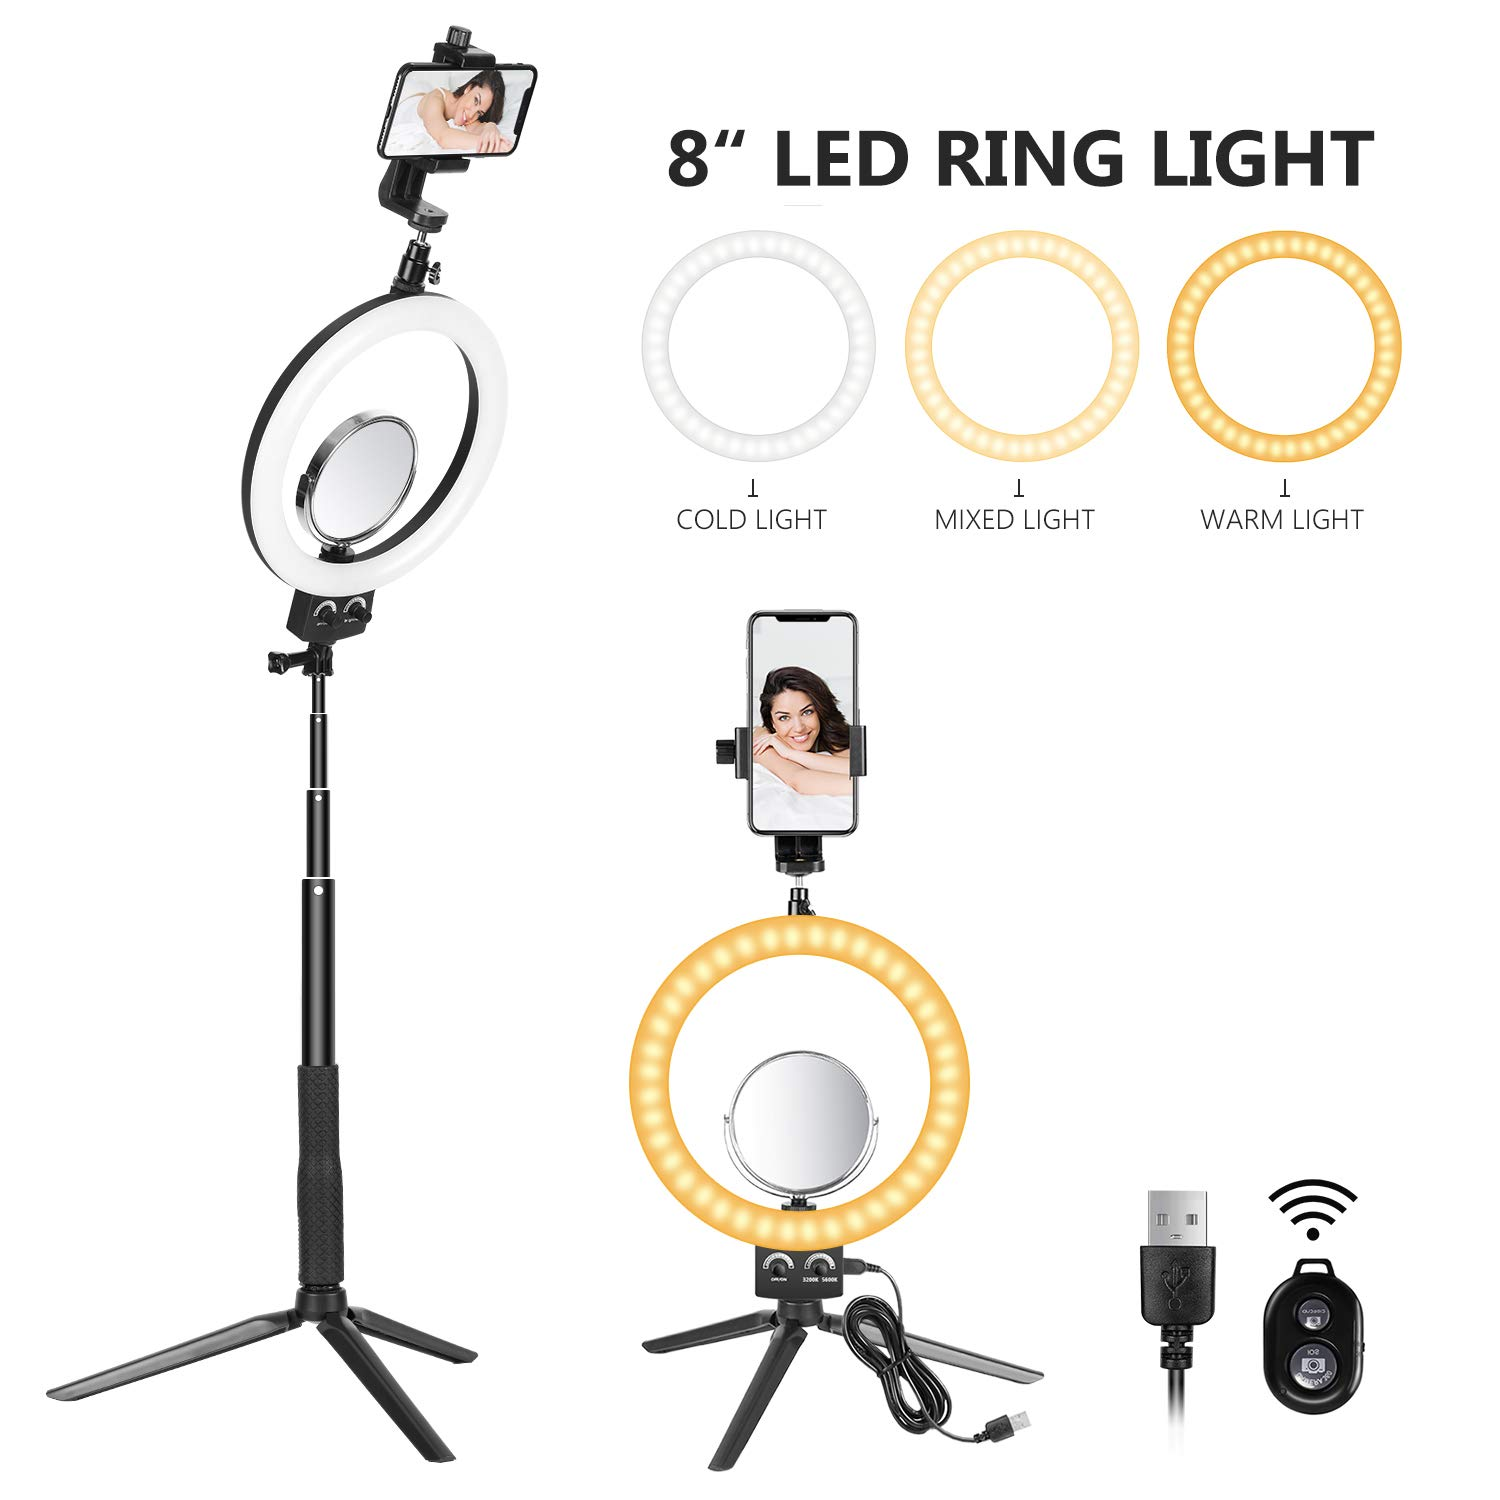 Neewer 8-inch LED Ring Light with Adjustable Tripod Stand Selfie Stick for YouTube Video Live Streaming Makeup Selfie, 3200-5600K Tabletop Lamp with Makeup Mirror/Mini Tripod/Phone Clamp,3 Light Modes